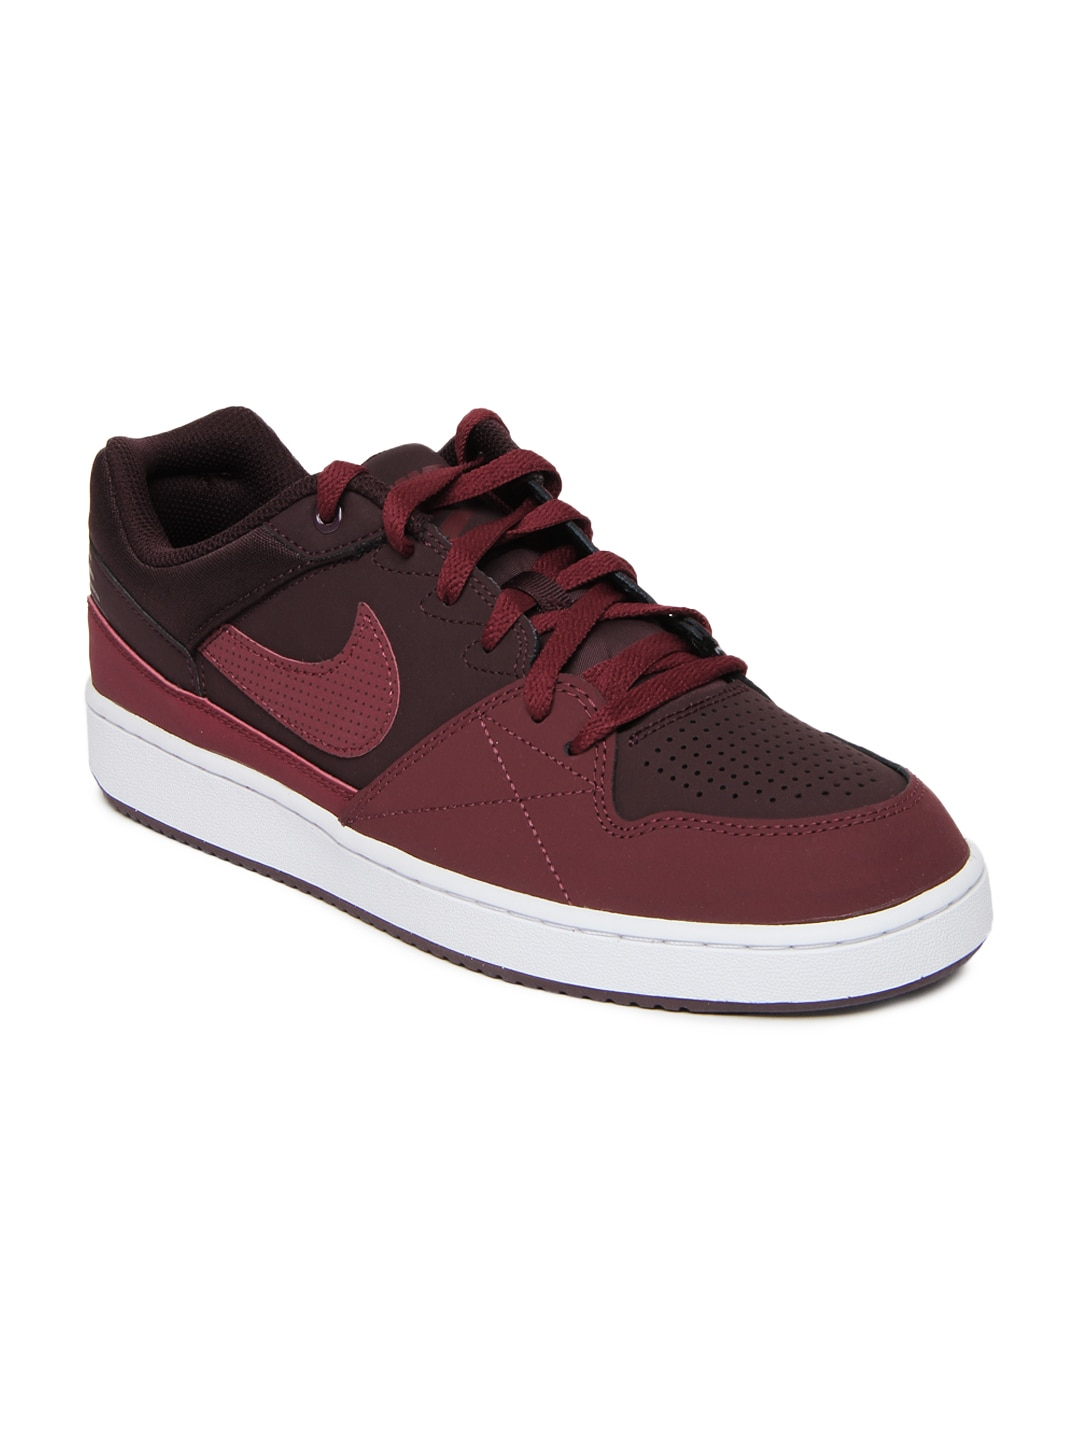 Nike Maroon Priority Low Casual Shoes